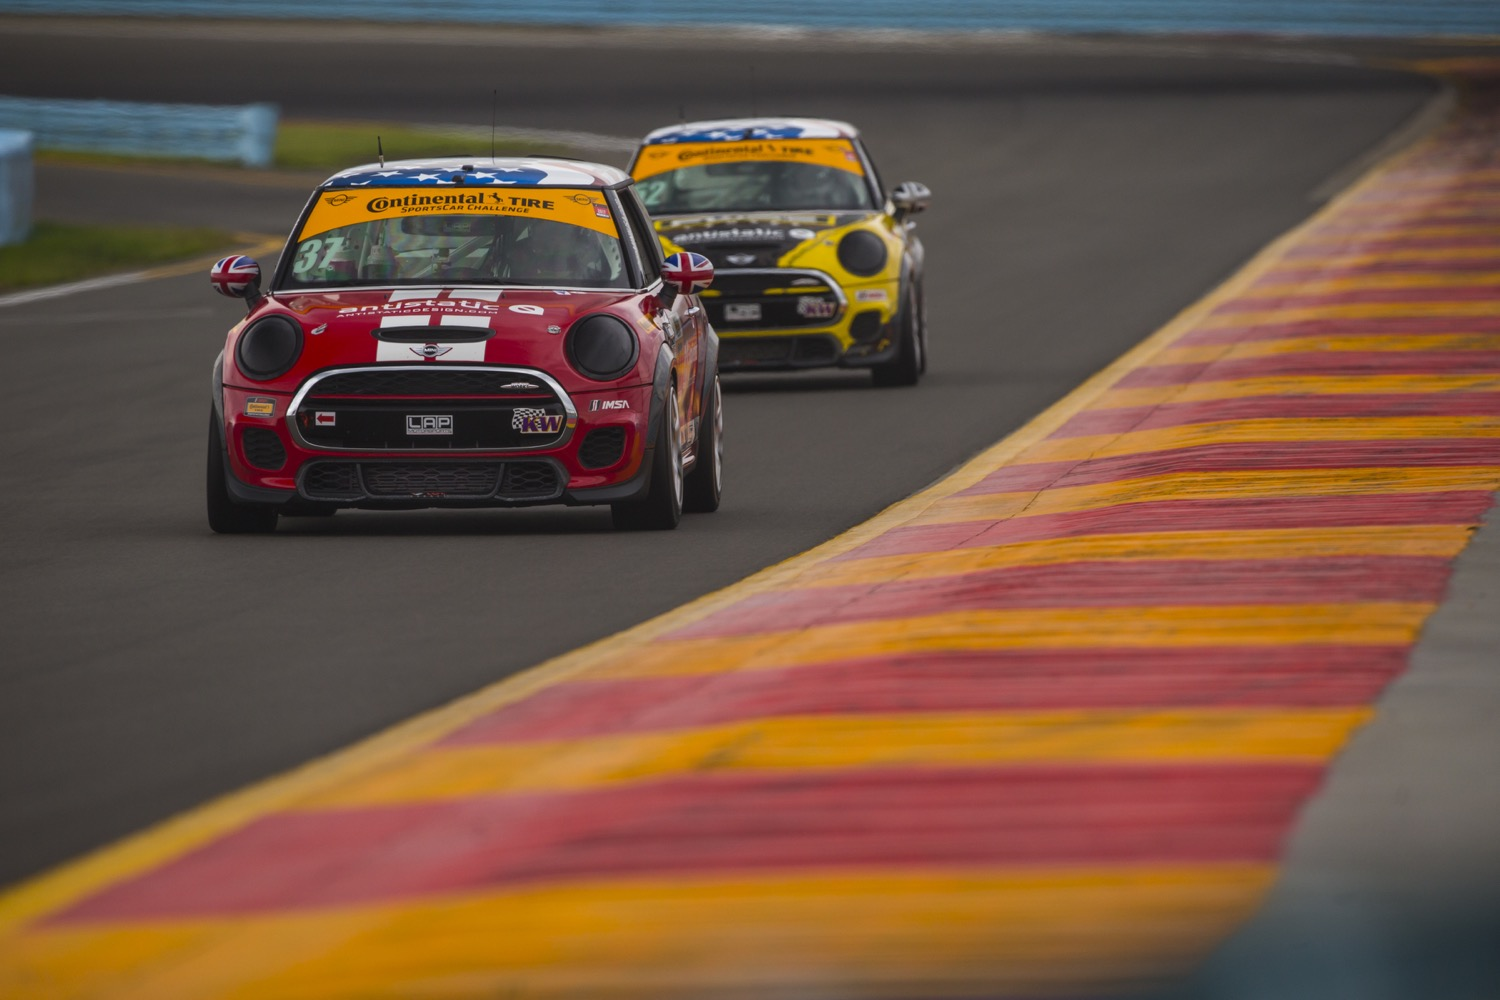 Watch Minis 1 2 Finish At The 2017 Continental Tire 120 From